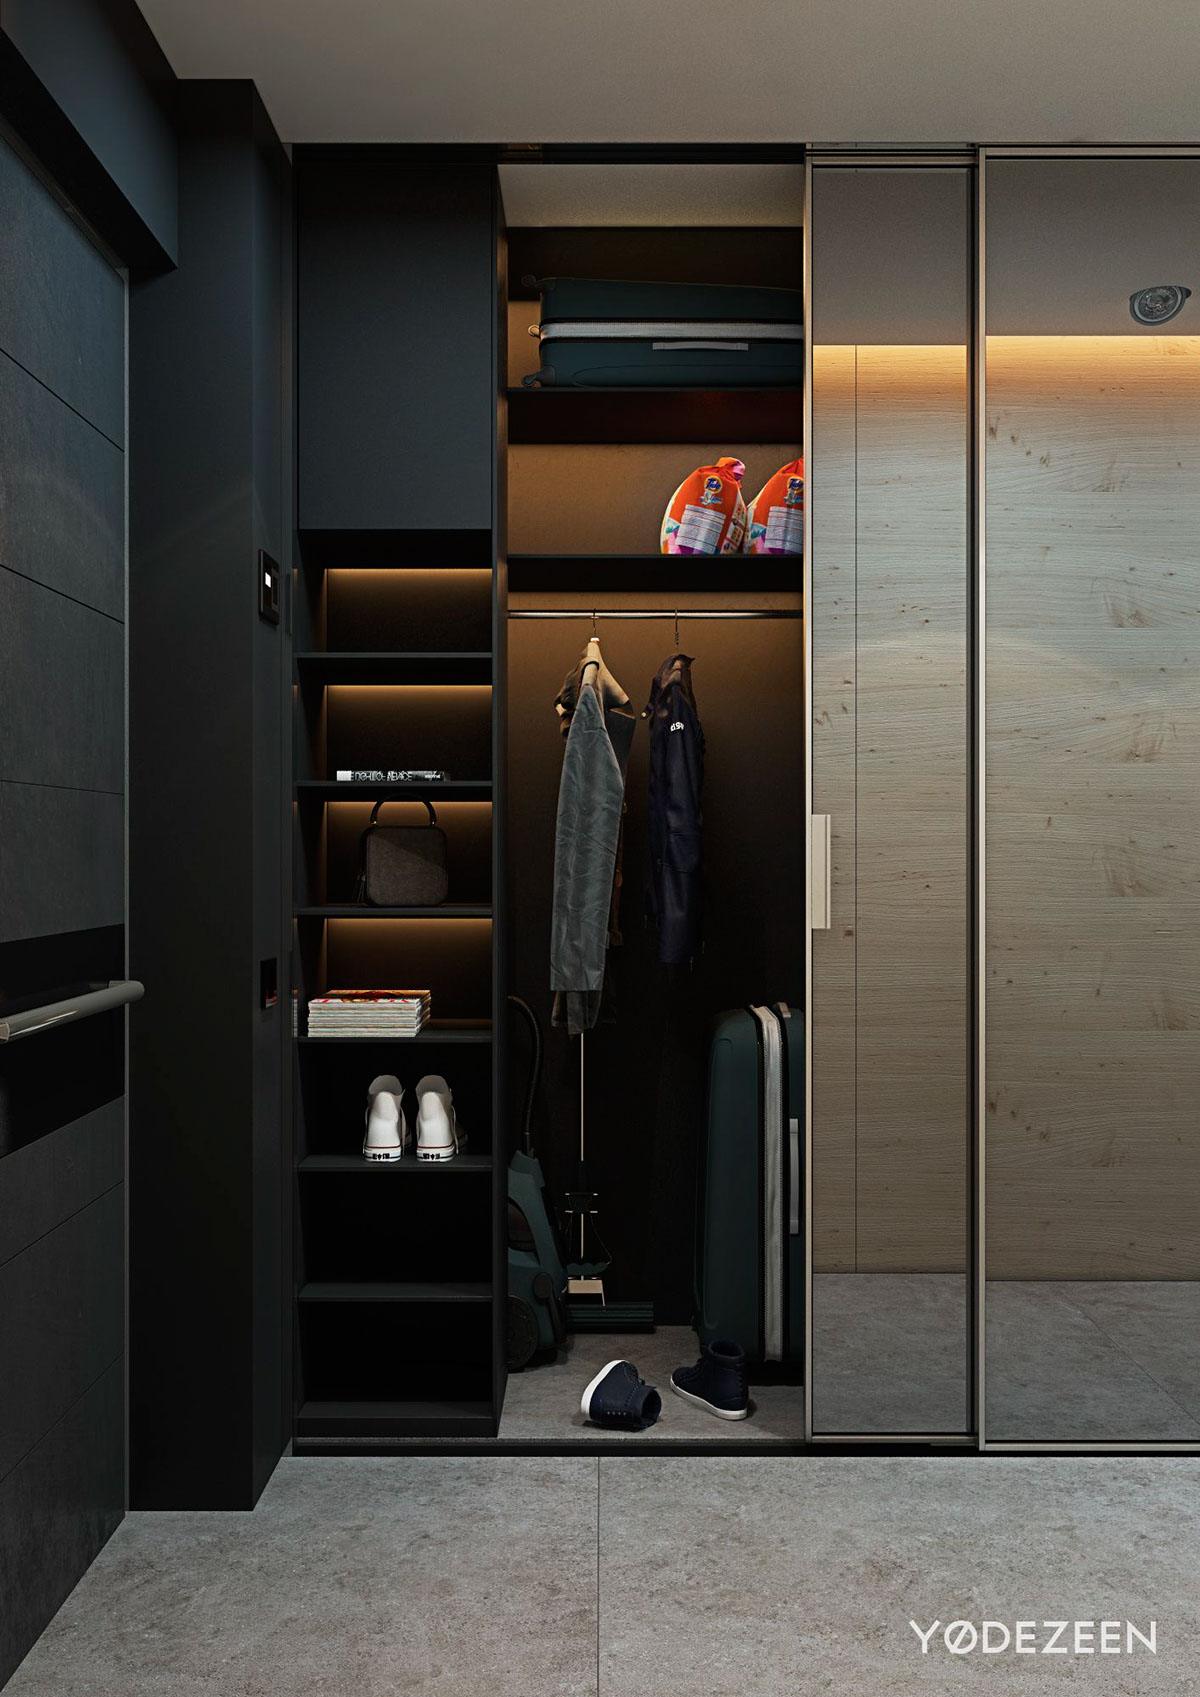 Studio Closet Design Of 5 Small Studio Apartments With Beautiful Design